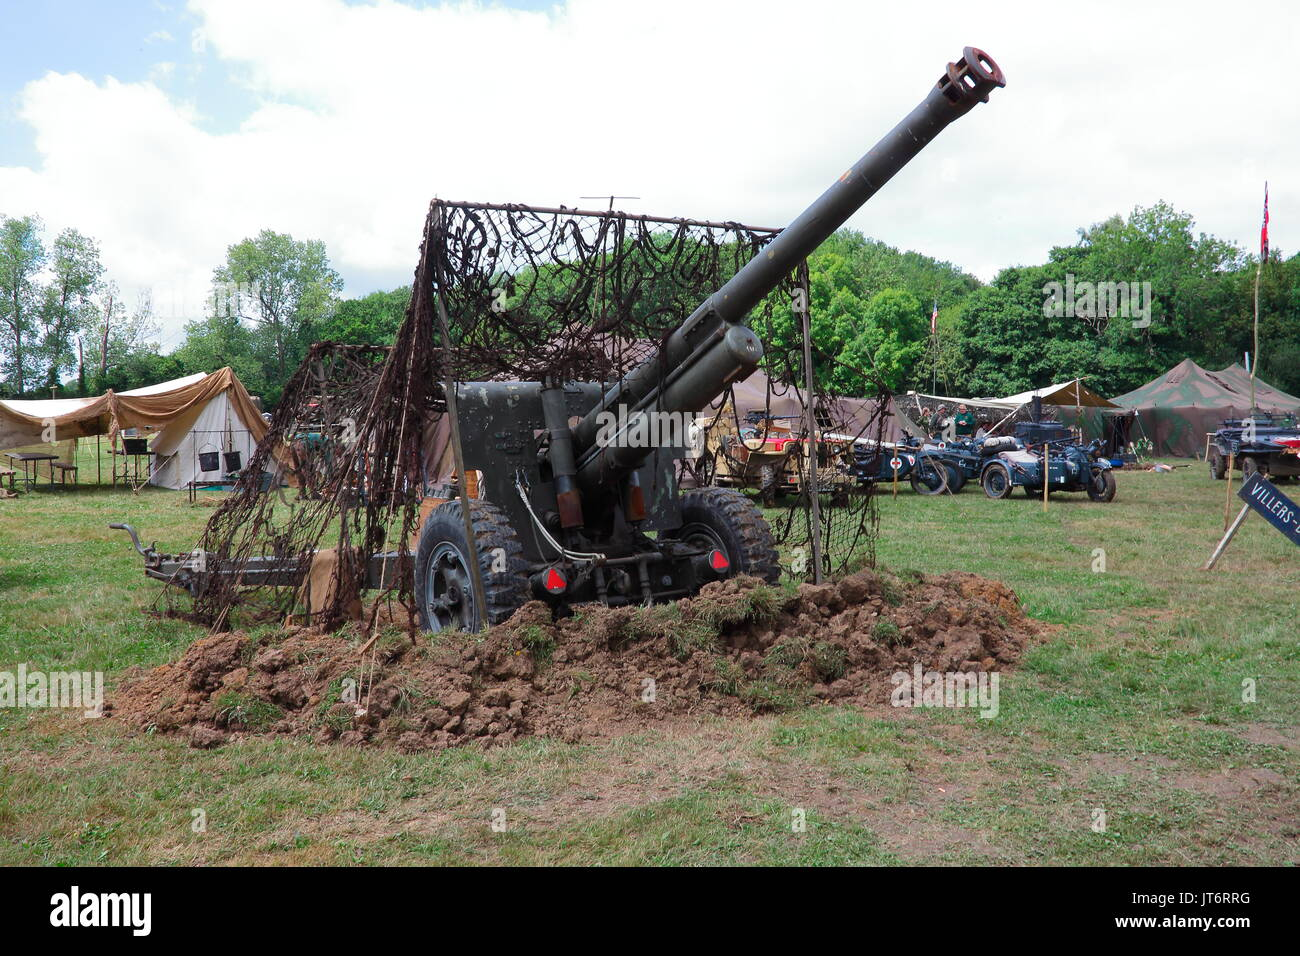 A nicelt restored field gun from foreign parts seen here on display at the War and Peace show held at Beltring in kent. - Stock Image